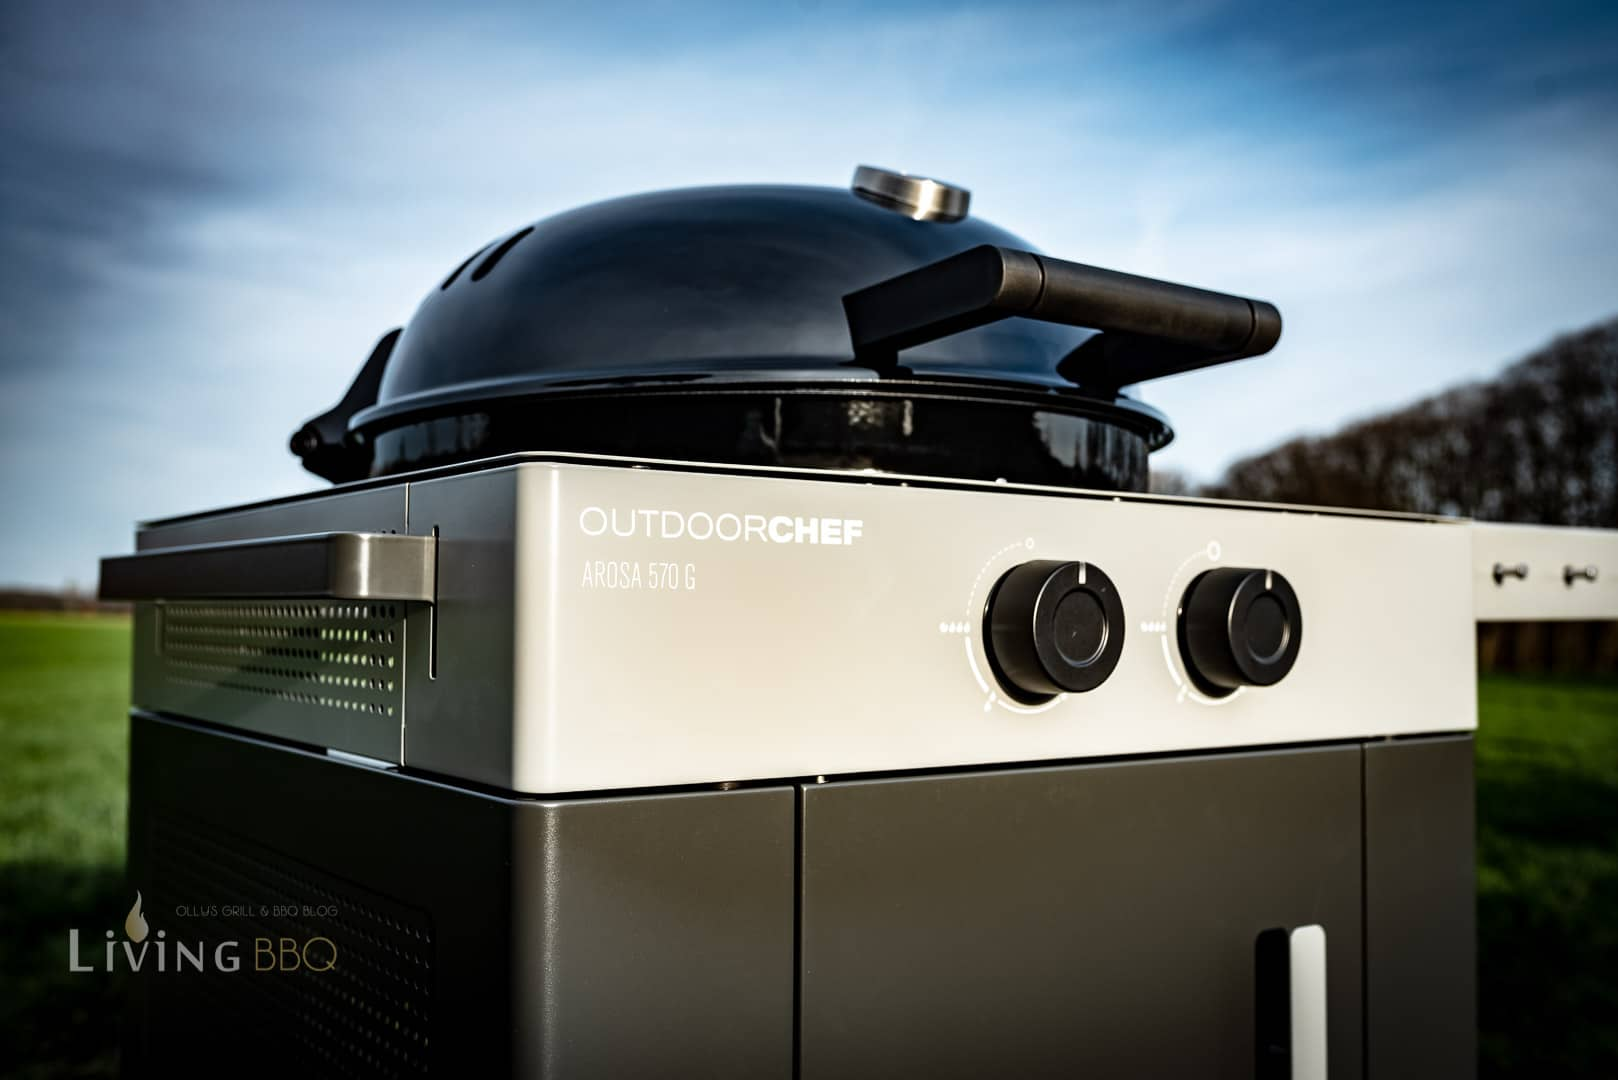 Front Outdoorchef Arosa 570 G